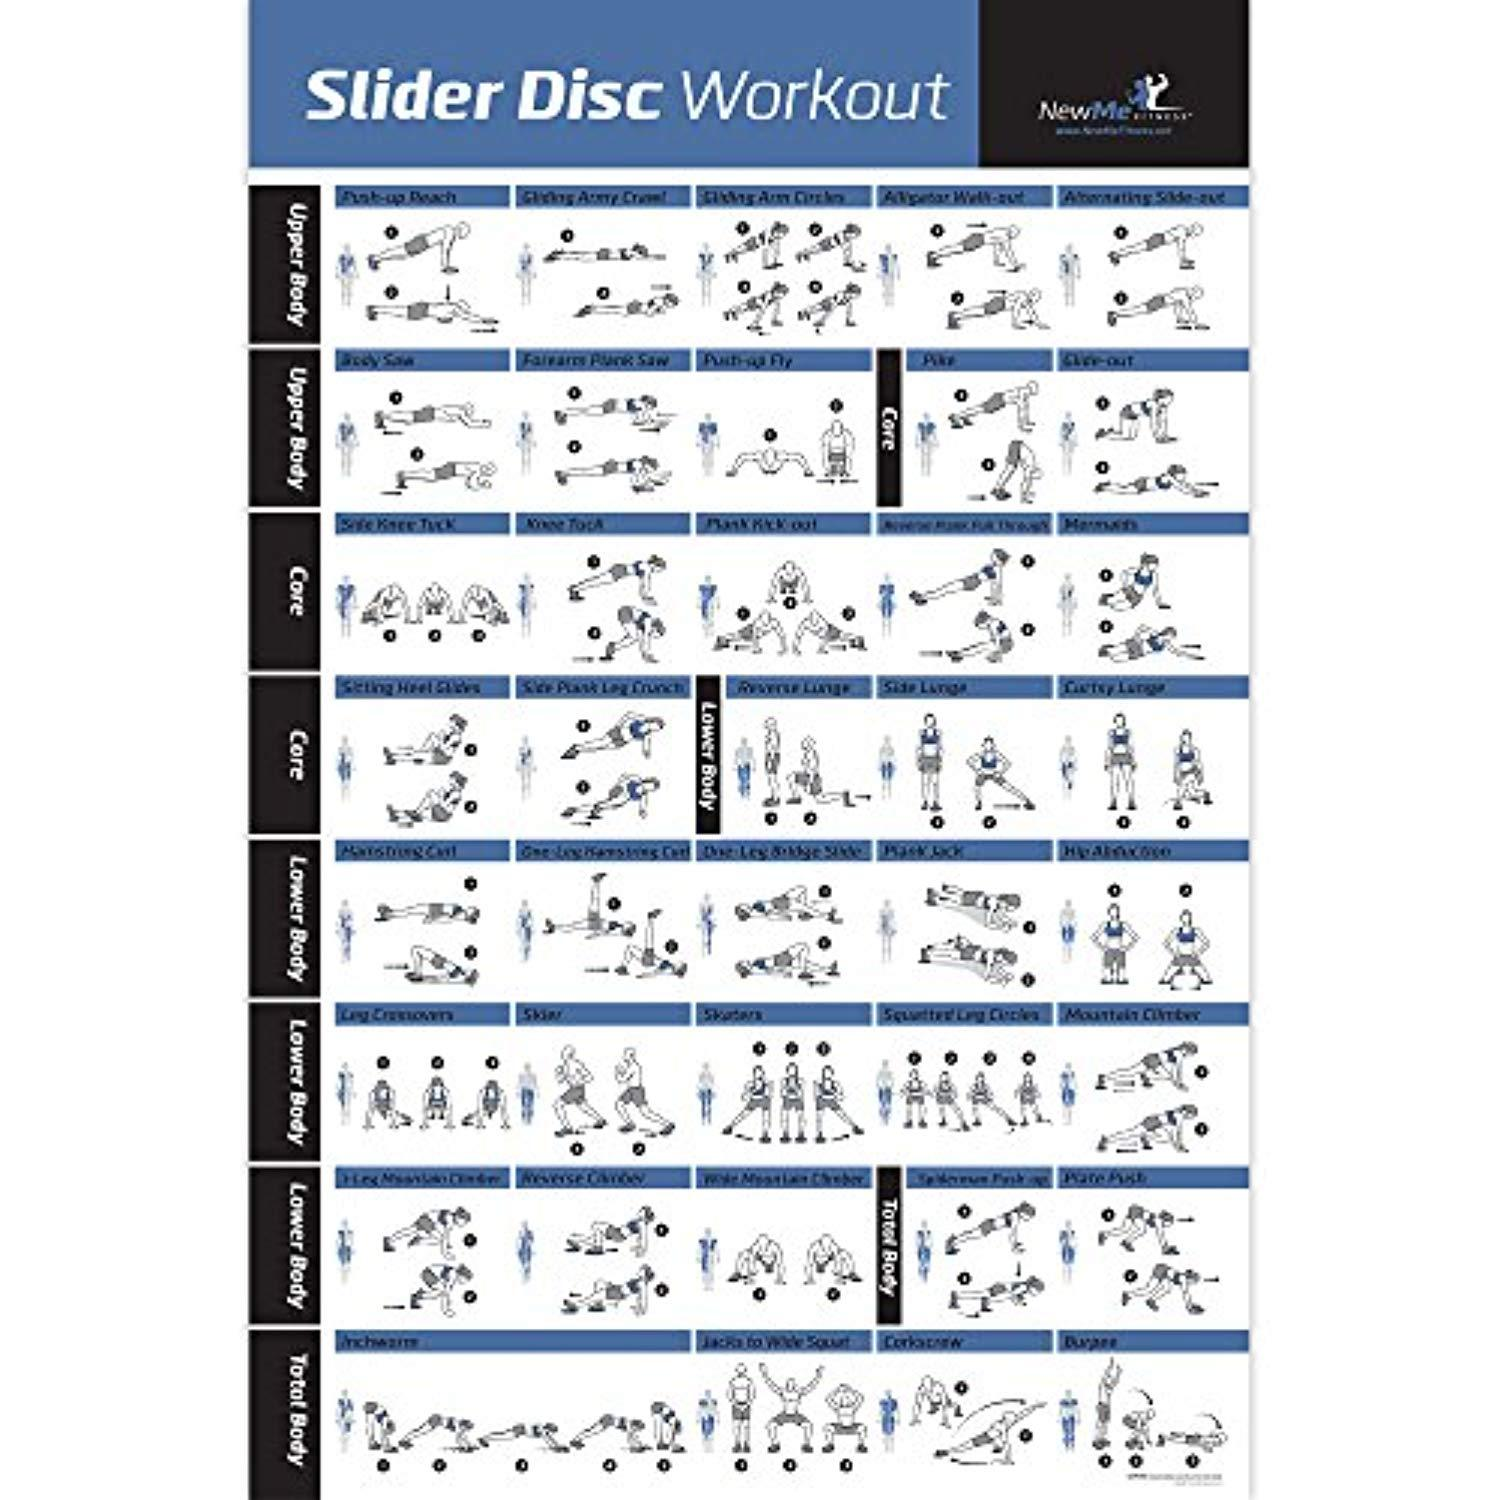 "Core Slider Gliding Discs Exercise Poster Laminated - Abdominal Fitness Chart - Total Body Workout Personal - Home Fitness Training Program for Glider Discs and Sliders - 20""x30"""